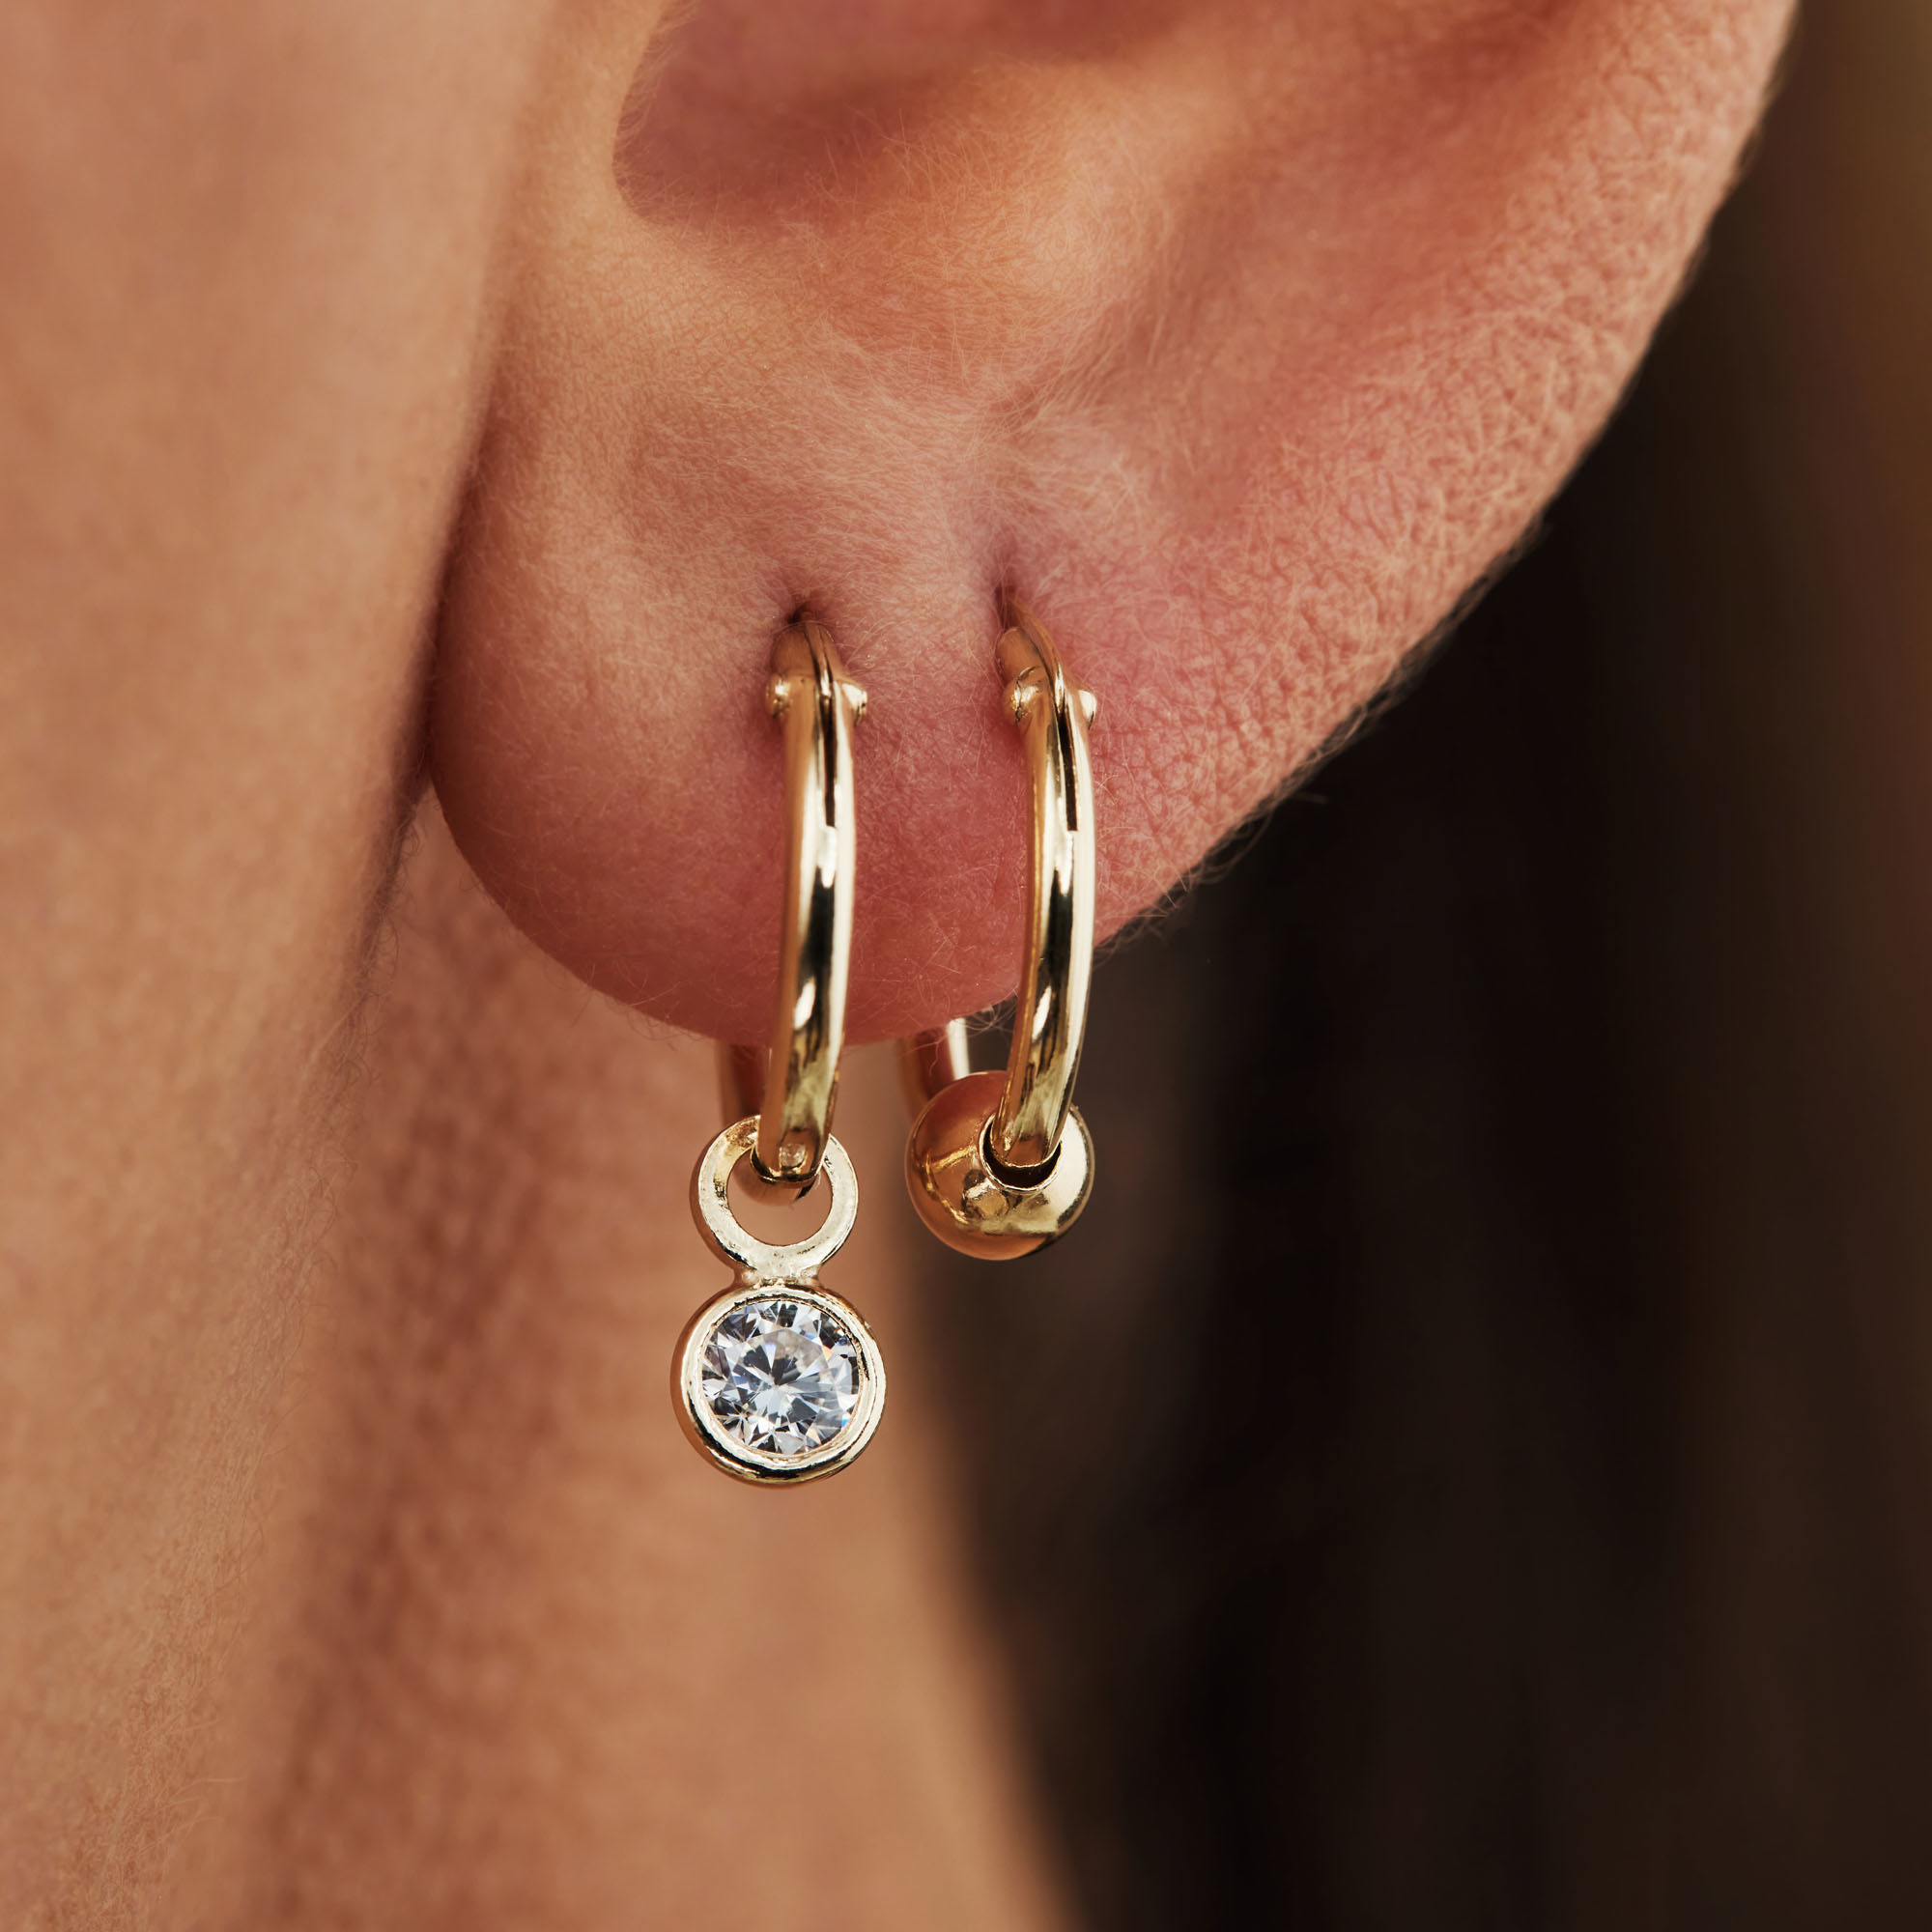 Selected Jewels Selected Gifts 925 sterling silver gold colored earrings set of 2 pairs of hoop earrings